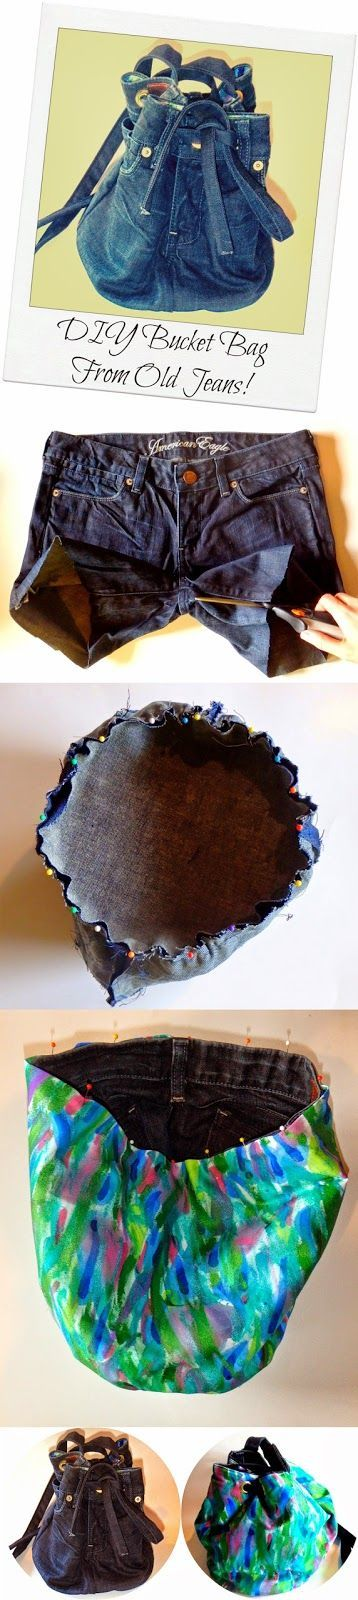 Zoom DIY: 13 Ideas to Recycle Old Jeans into Useful Things